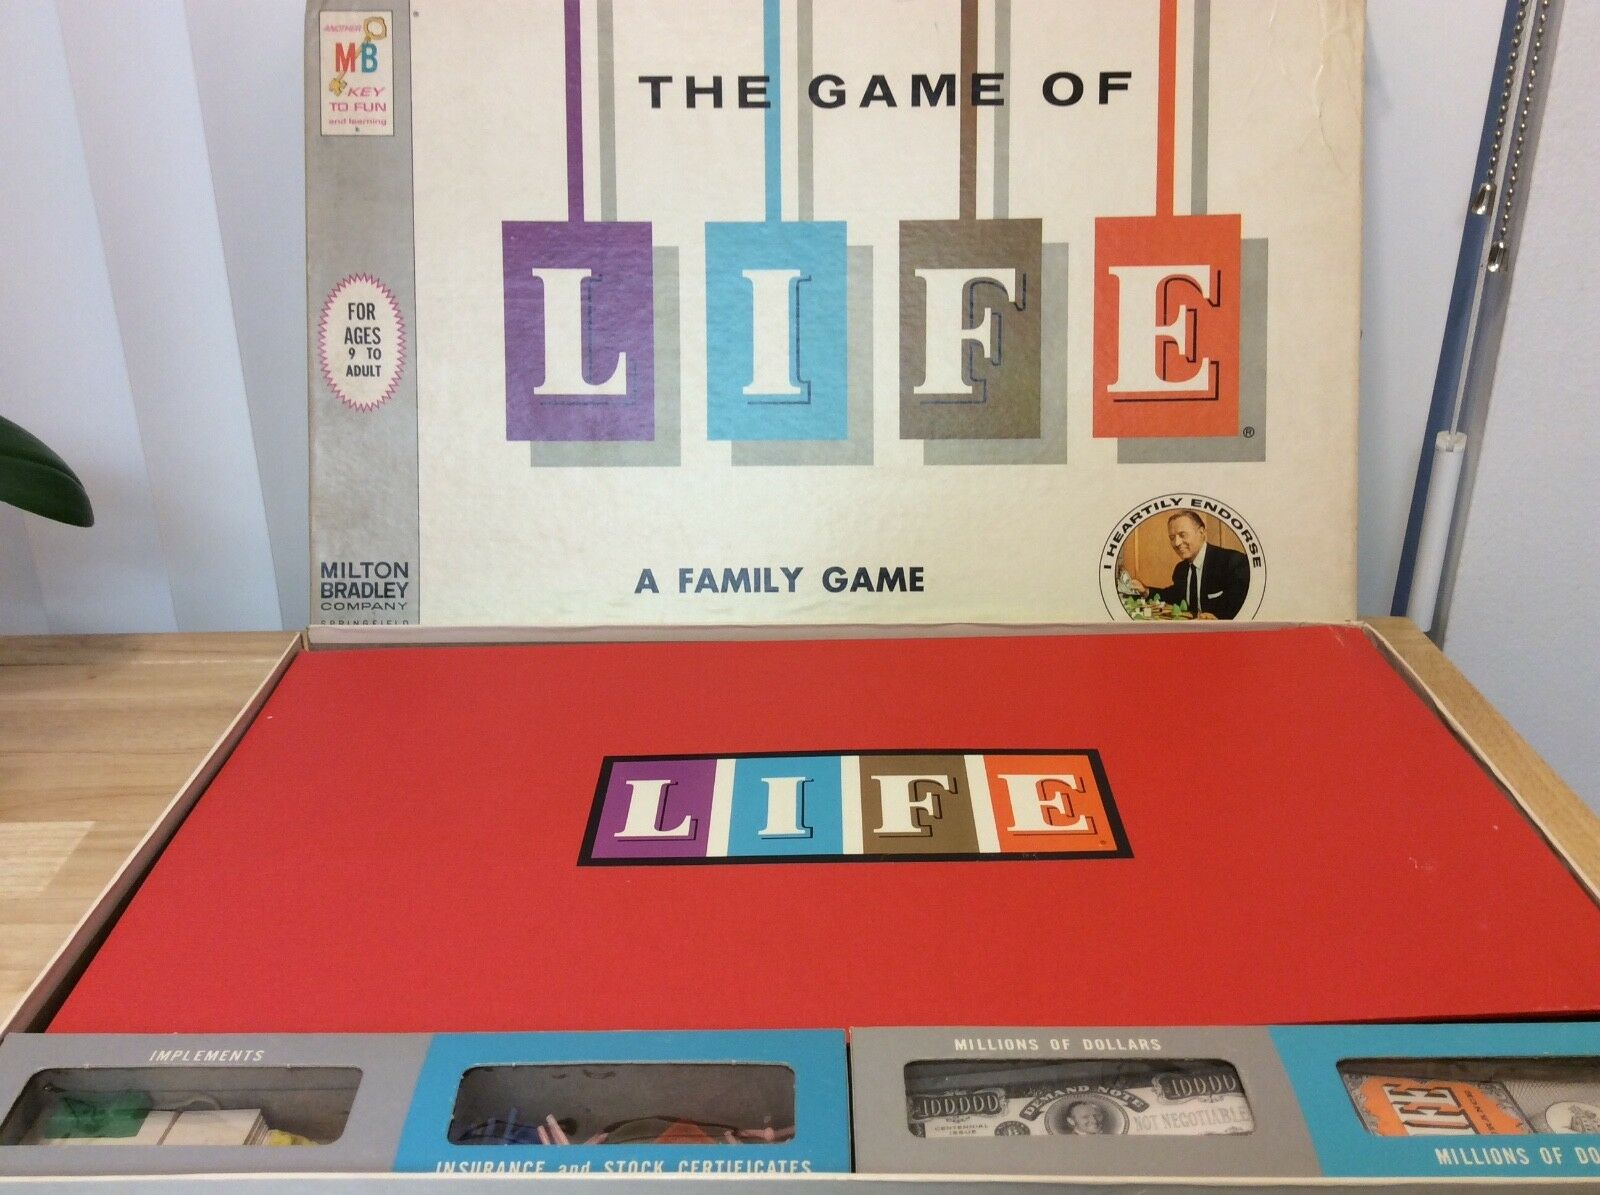 Vtg THE GAME OF LIFE Board Game, Complete, Art Linkletter 1960 MID-CENTURY EXCLT